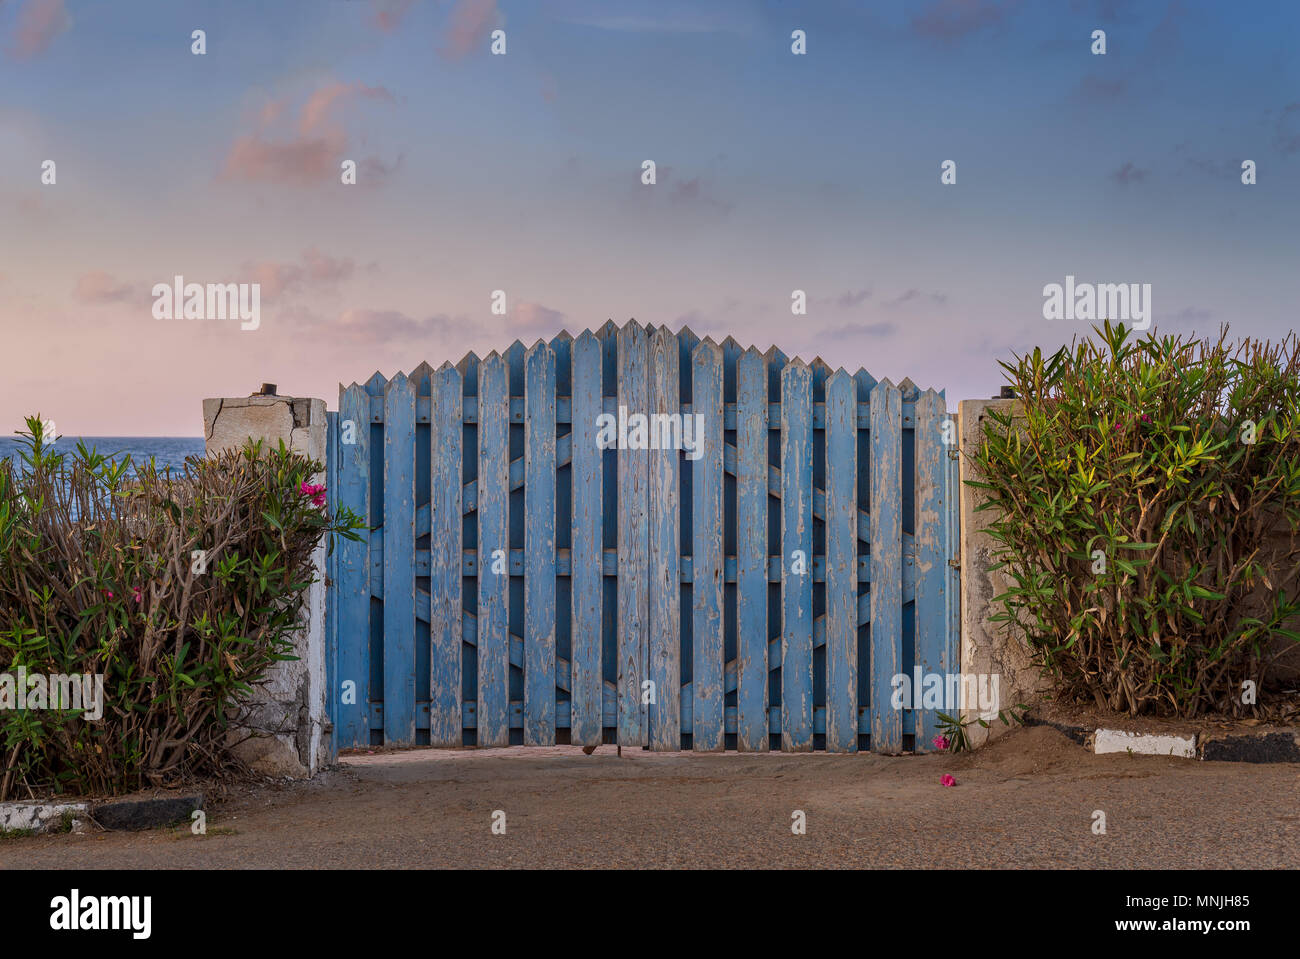 Curved weathered blue wooden garden gate with green bushes at both sides and partly cloudy sky at sunrise time at Montaza public park, Alexandria, Egy - Stock Image